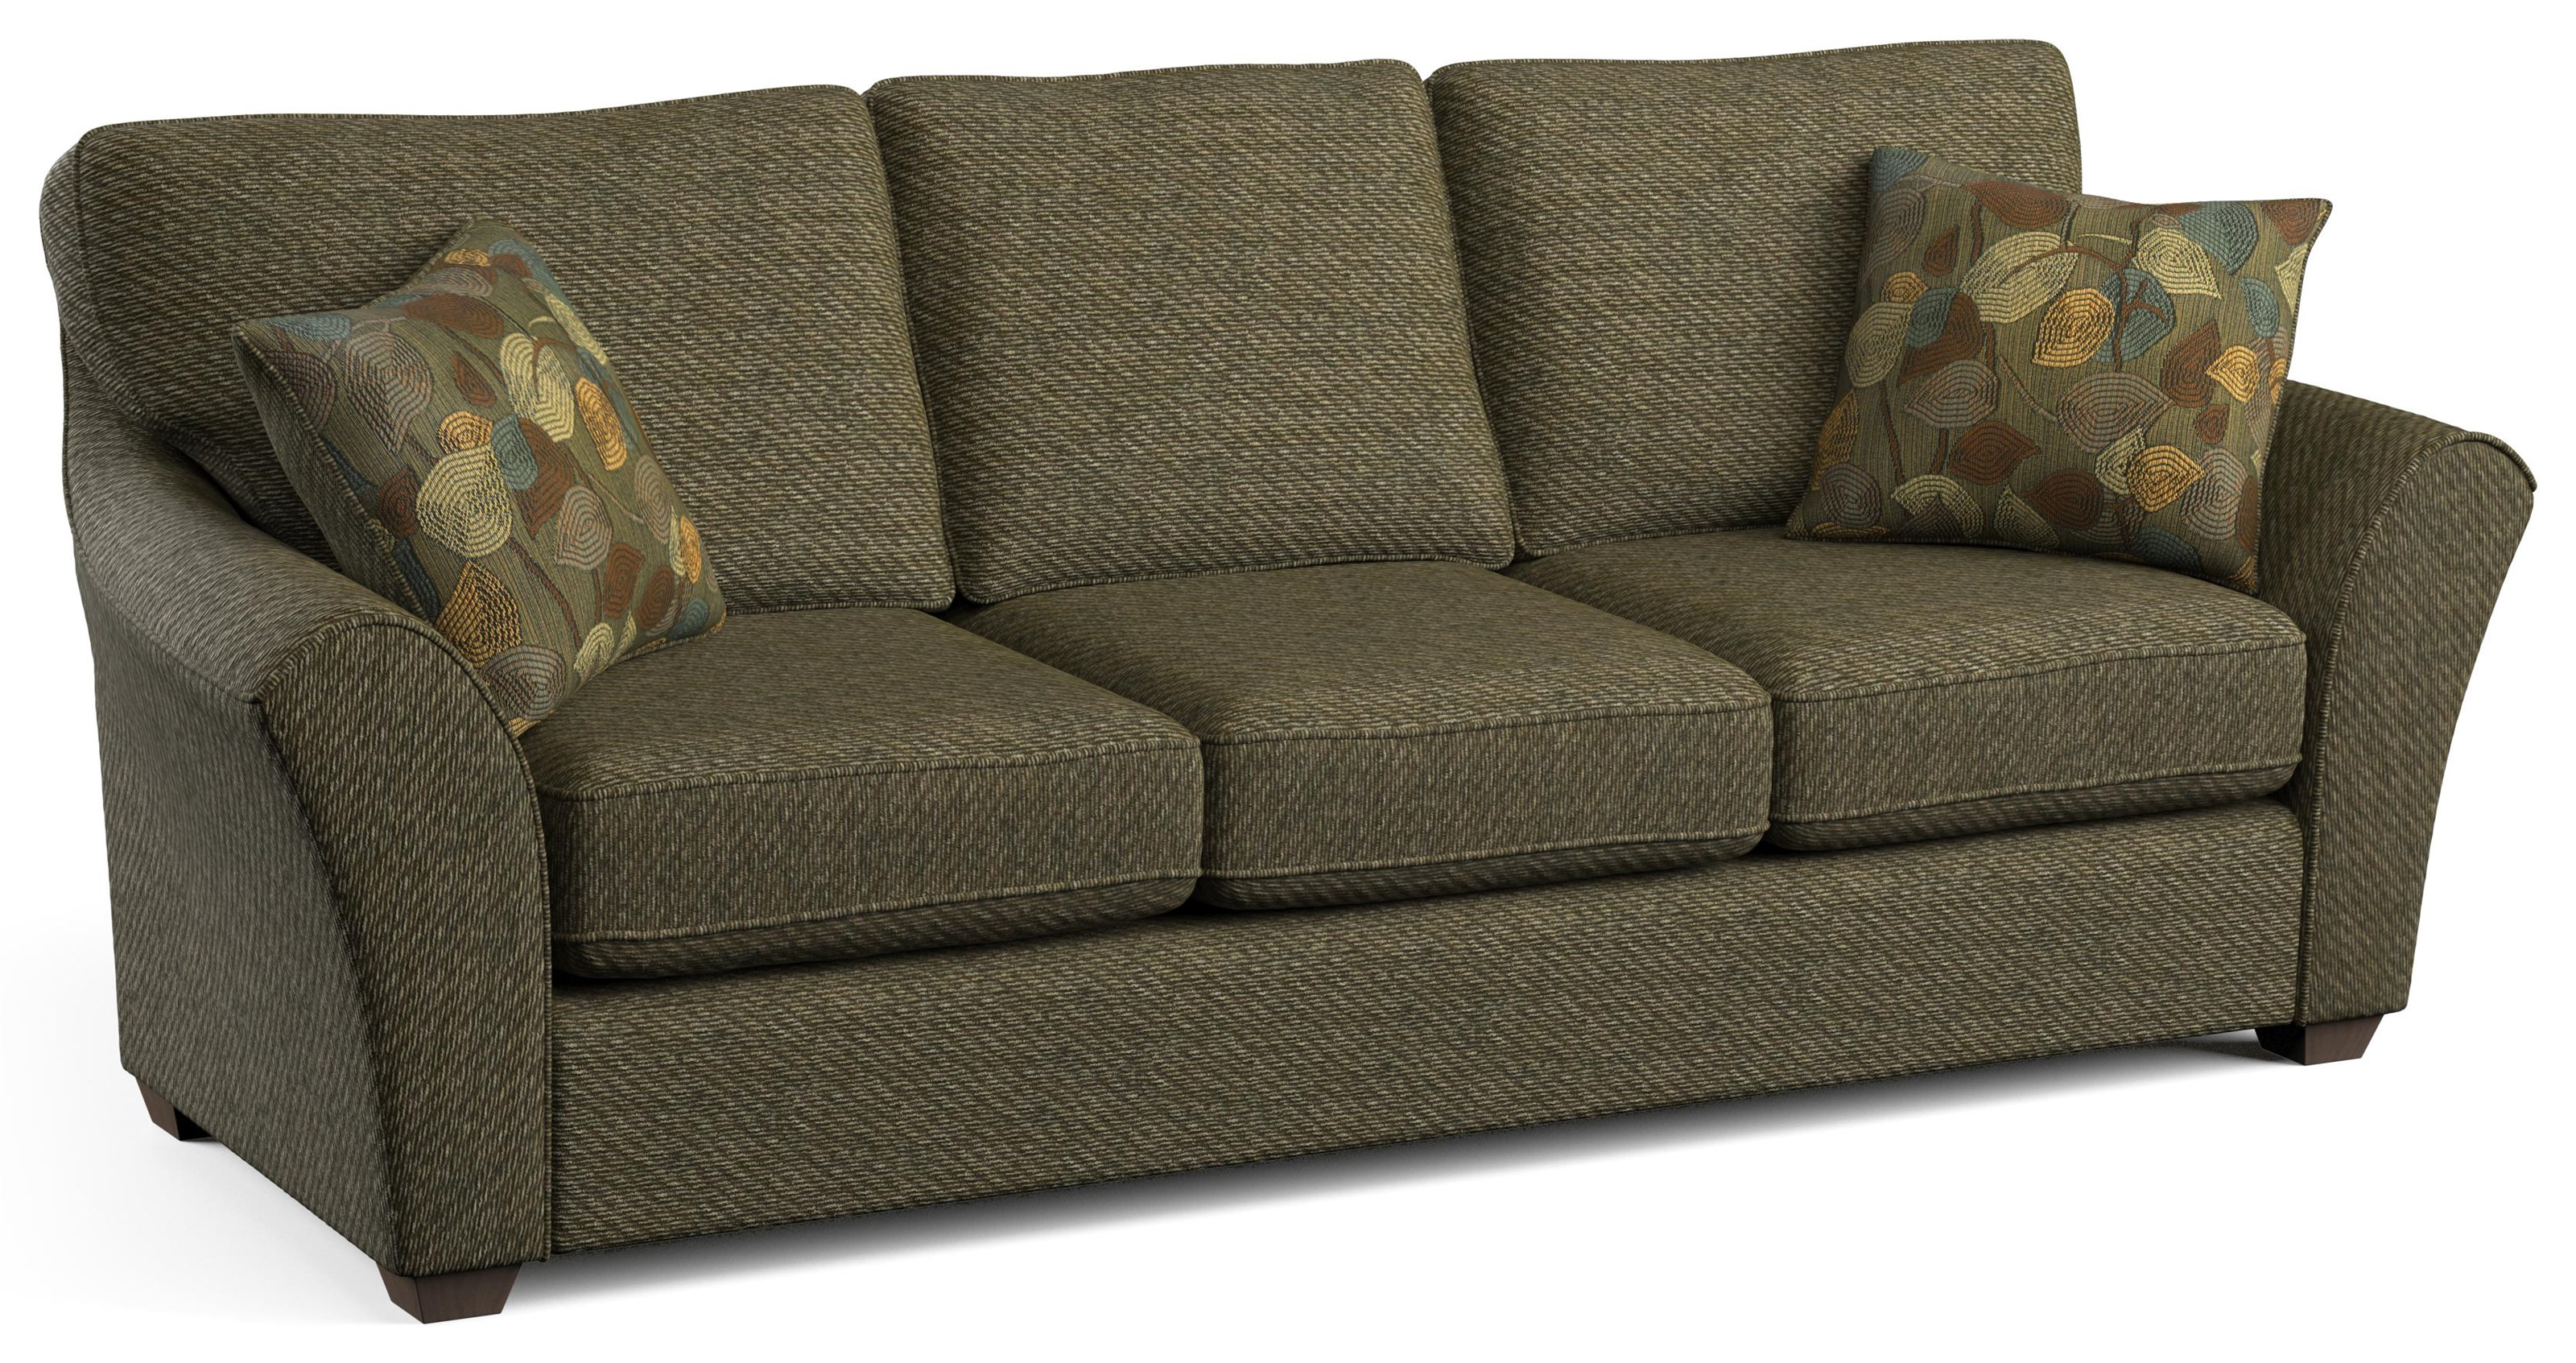 112 Starmount Pistachio Starmount Sofa by Sunset Home at Walker's Furniture